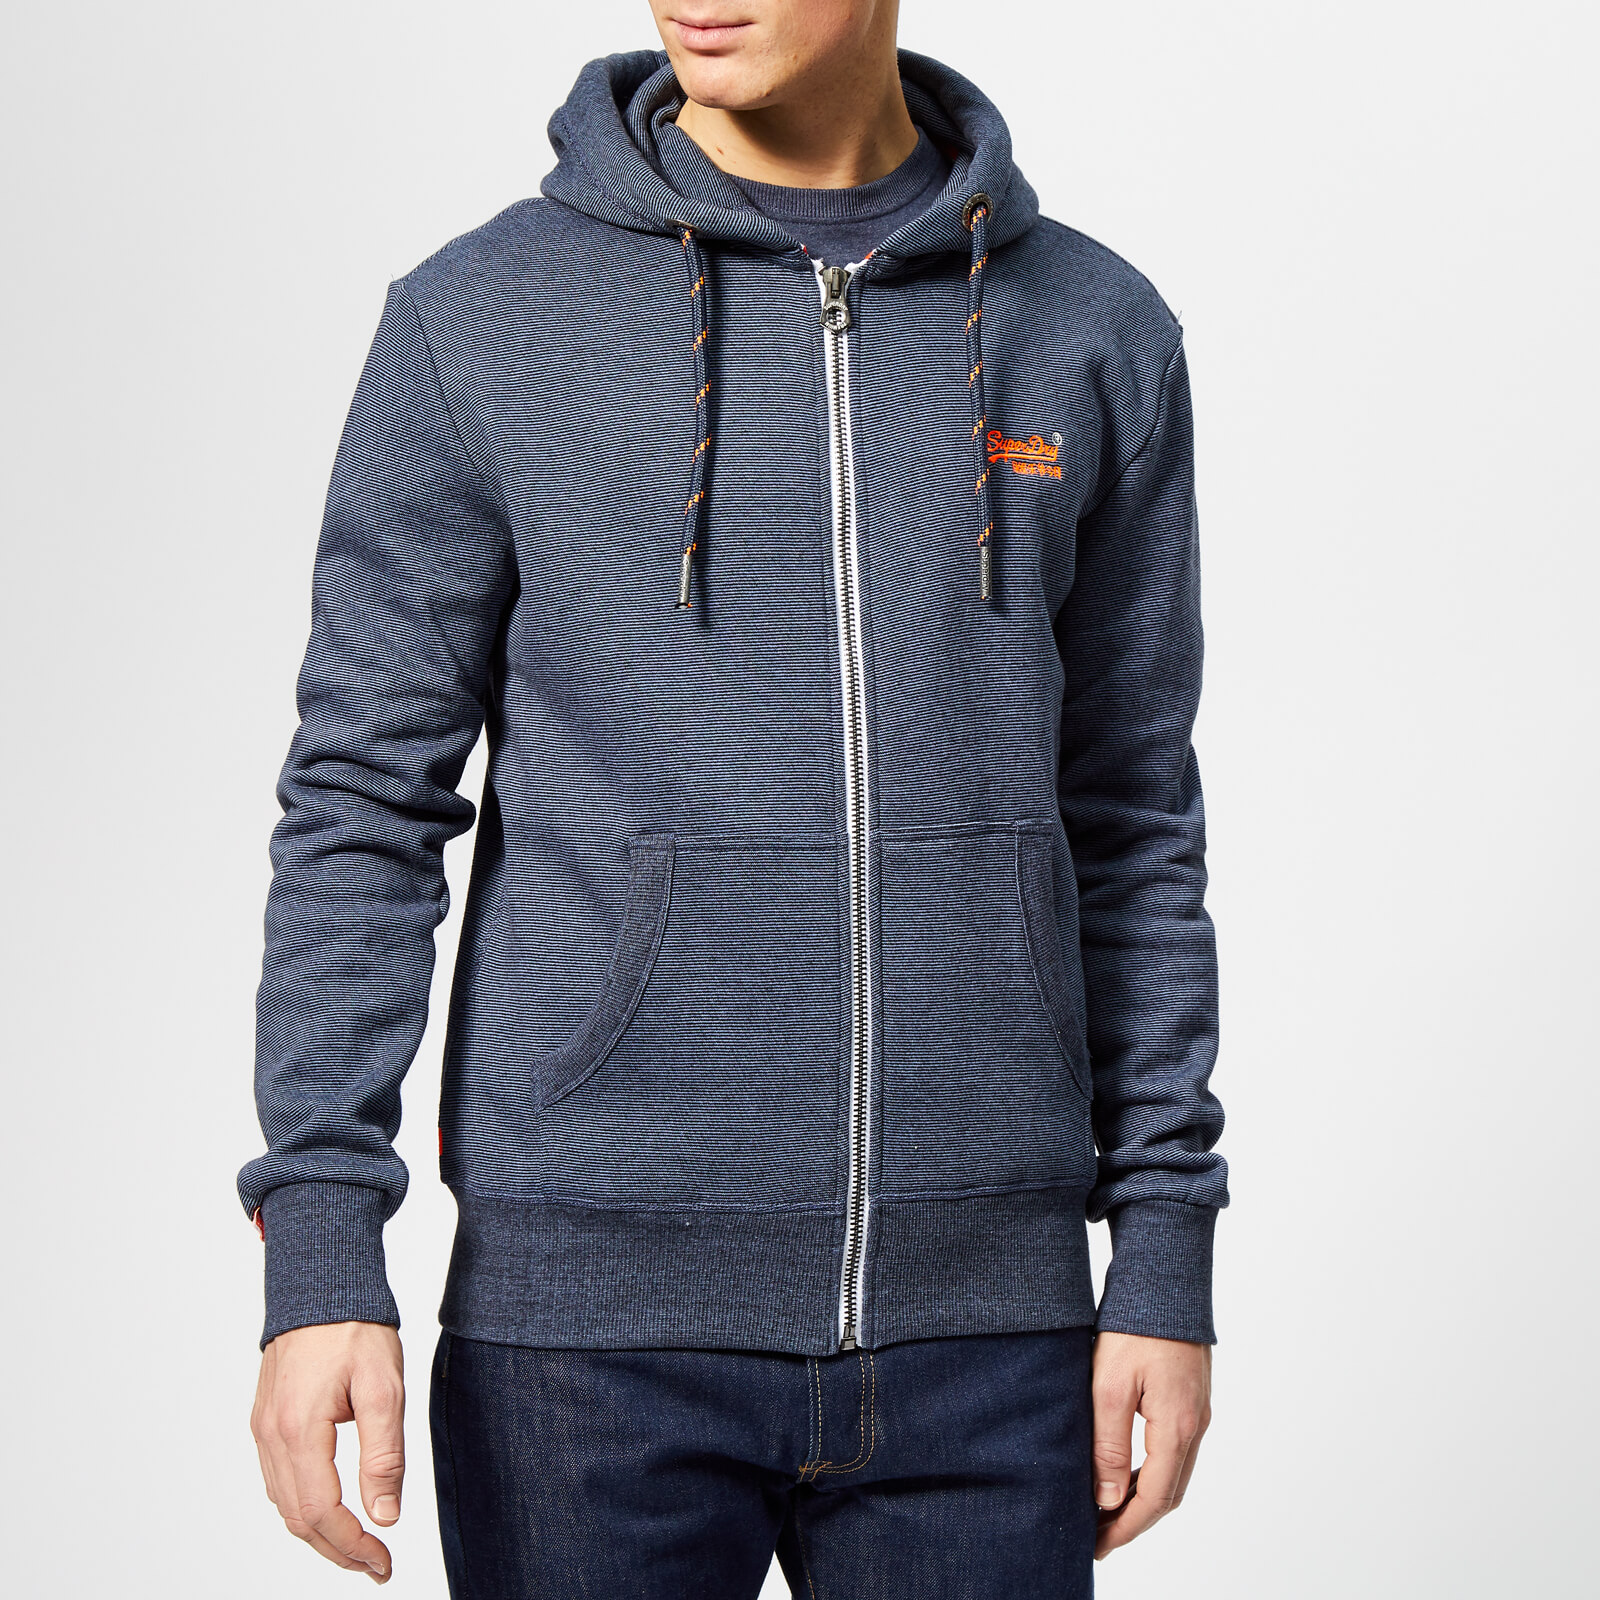 2eecf869ff16 Superdry Men's Orange Label Zip Hoody - Abyss Navy Feeder Stripe Mens  Clothing | TheHut.com